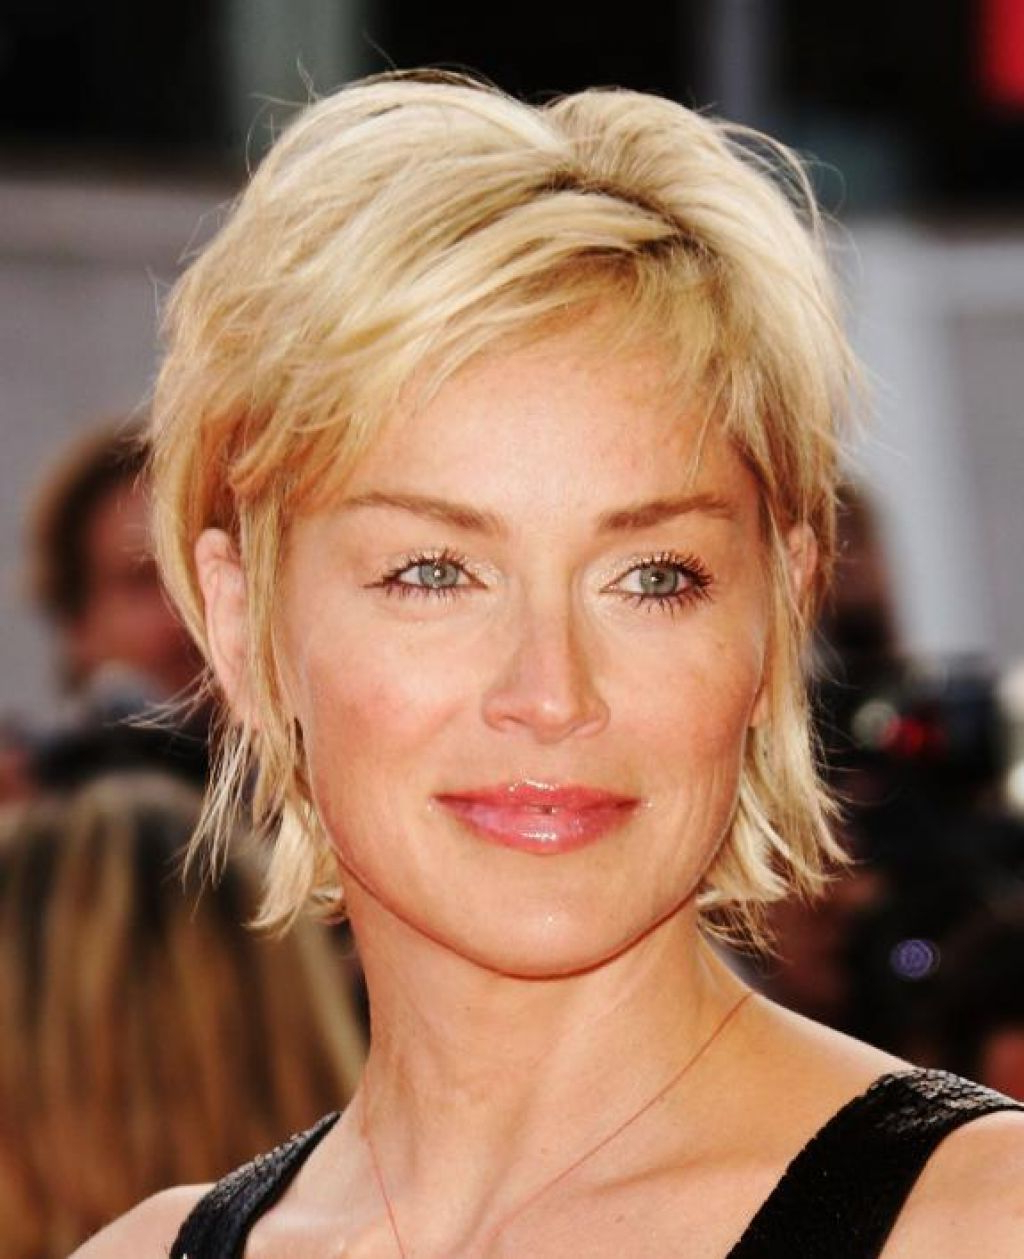 Image Result For Medium Length Hairstyles For 50 Year Old Women Regarding Short Hair 50 Year Old Woman (View 3 of 25)